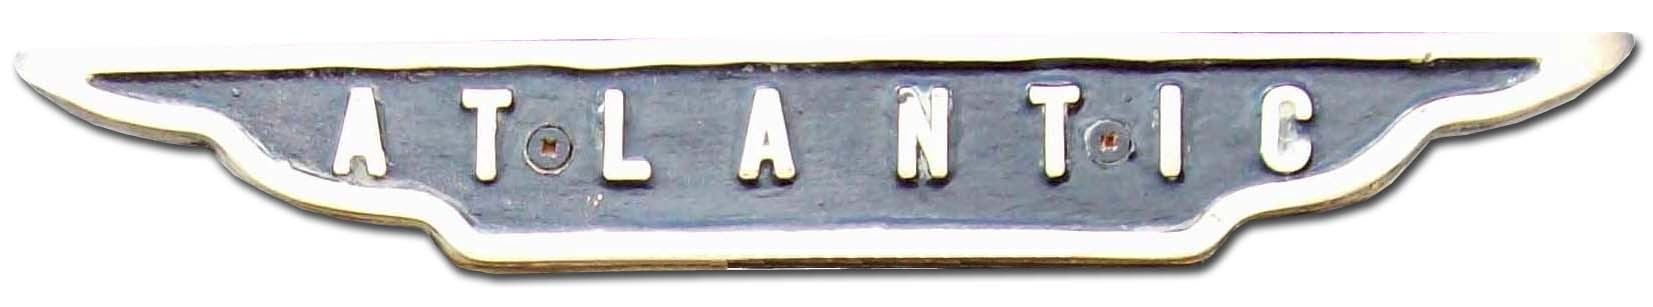 Atlantic (George Rotinoff Motors Ltd) (Colbrook). Rotinoff Atlantic GR7 (1957 grill emblem)